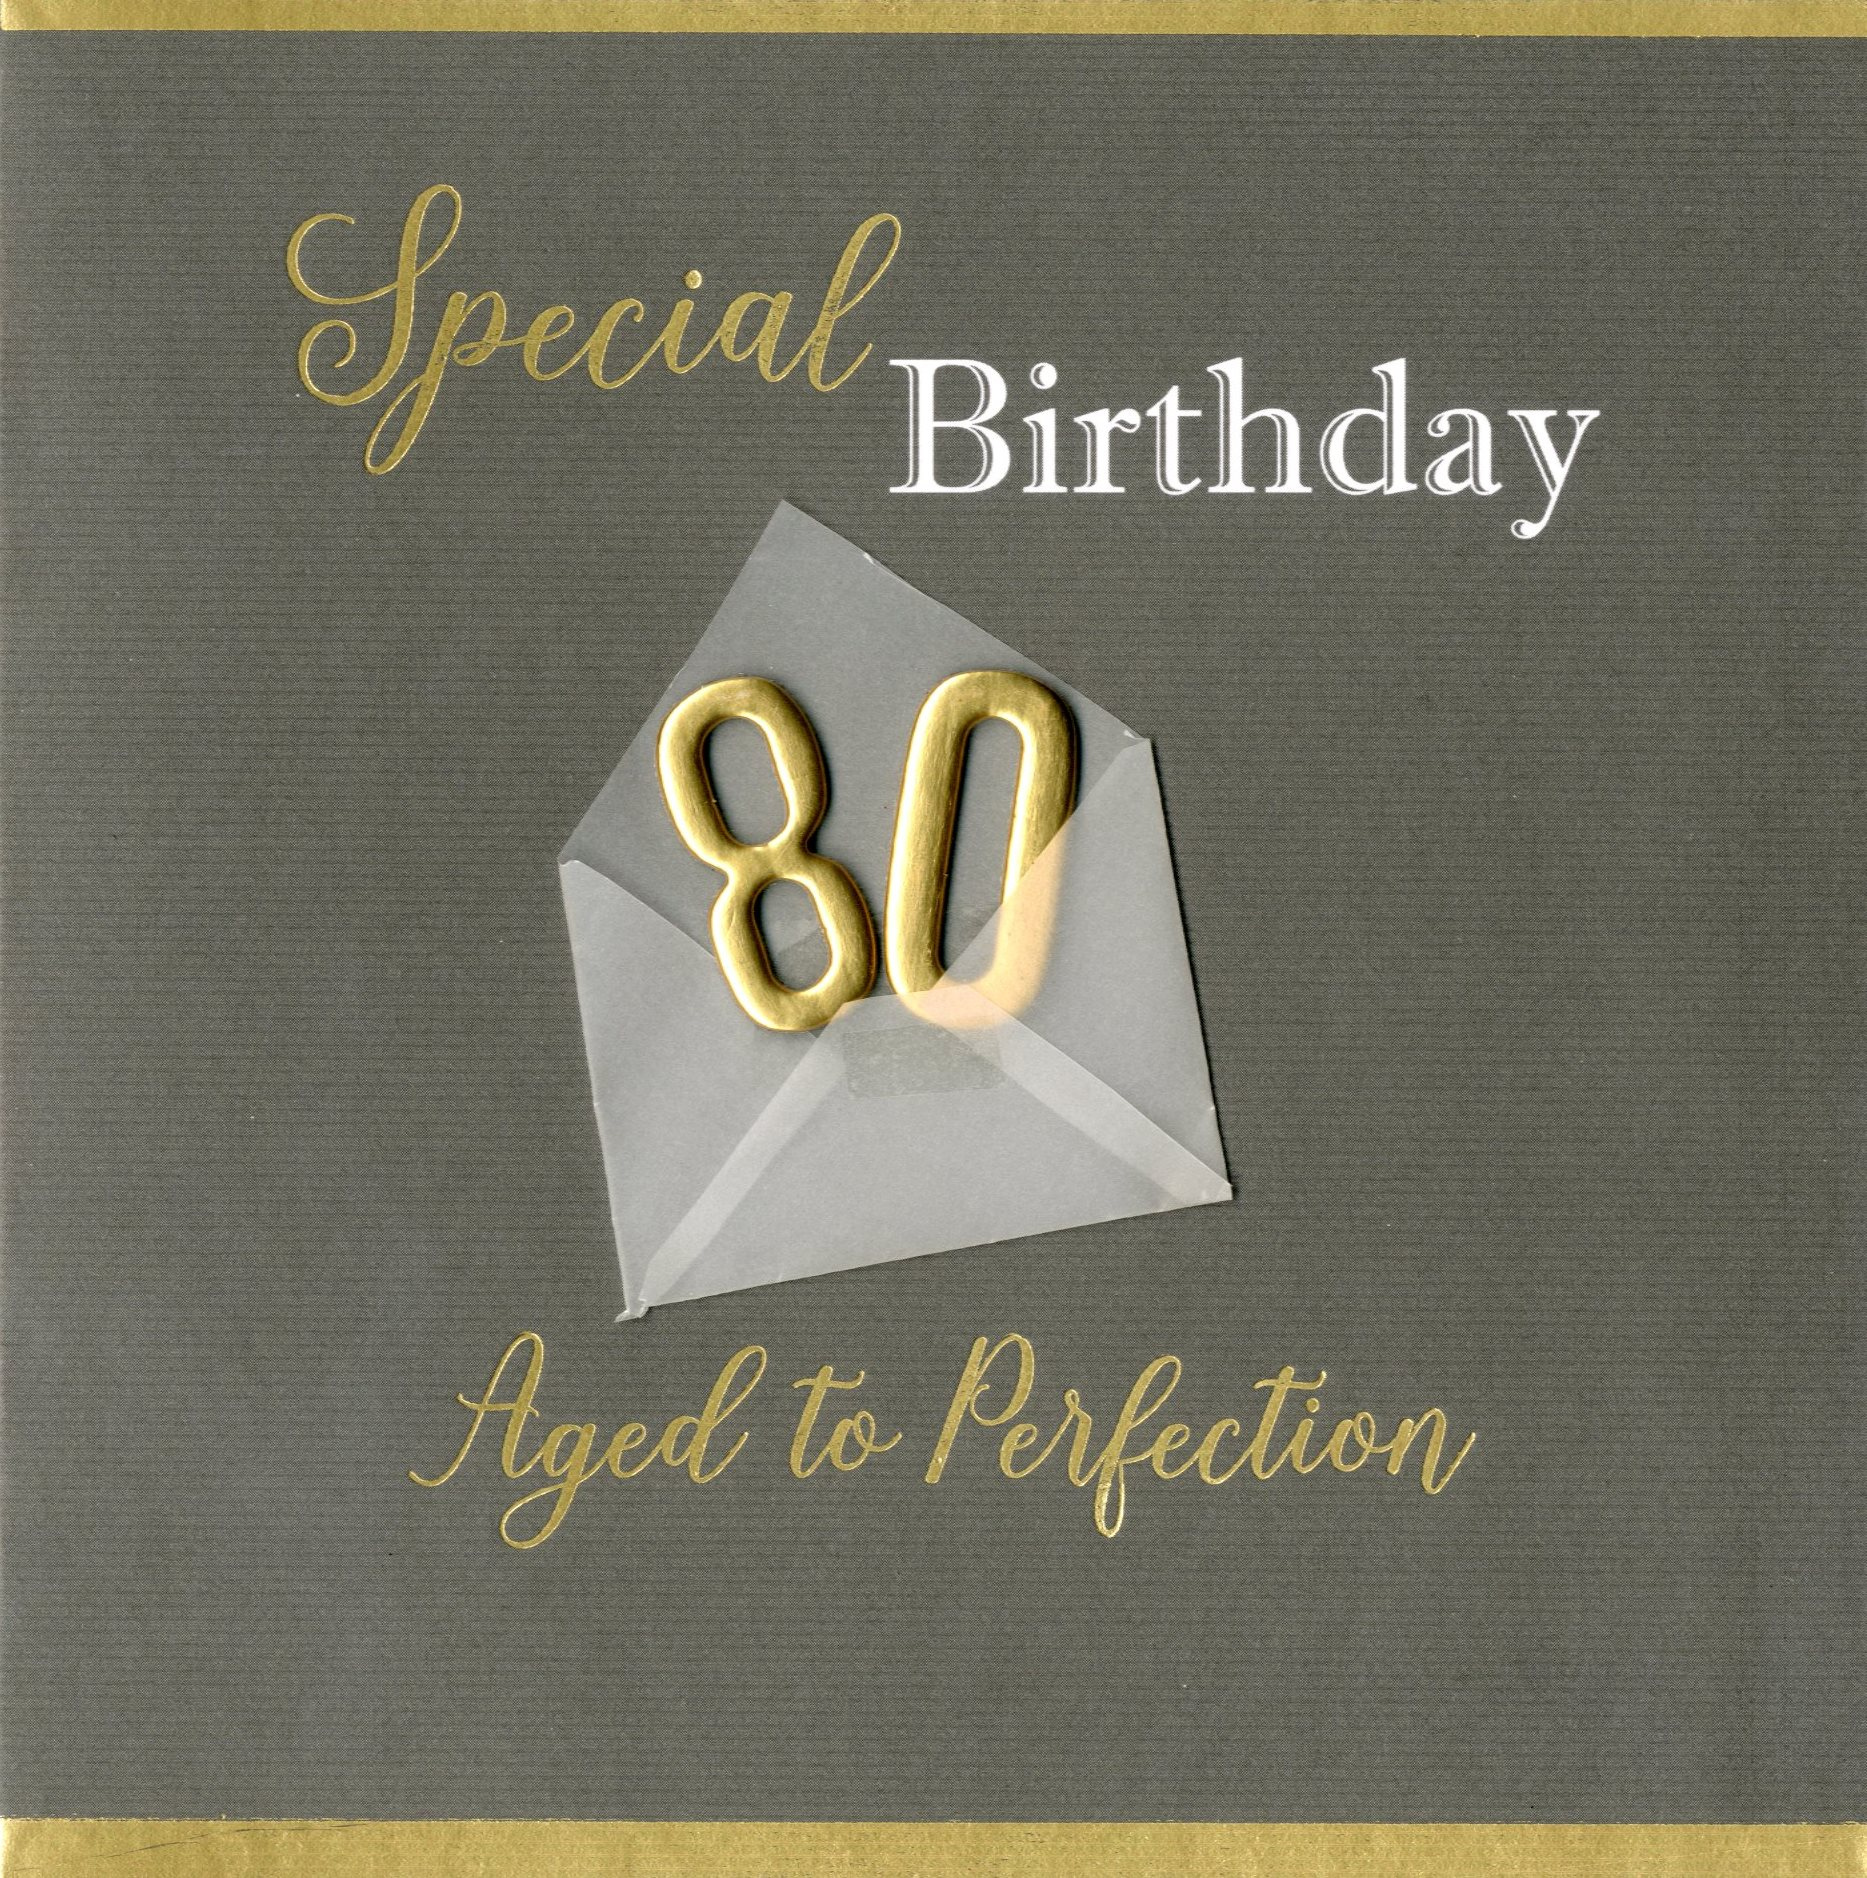 Special Birthday Wishes Just For You Notting Hill Range of Cards Blank inside